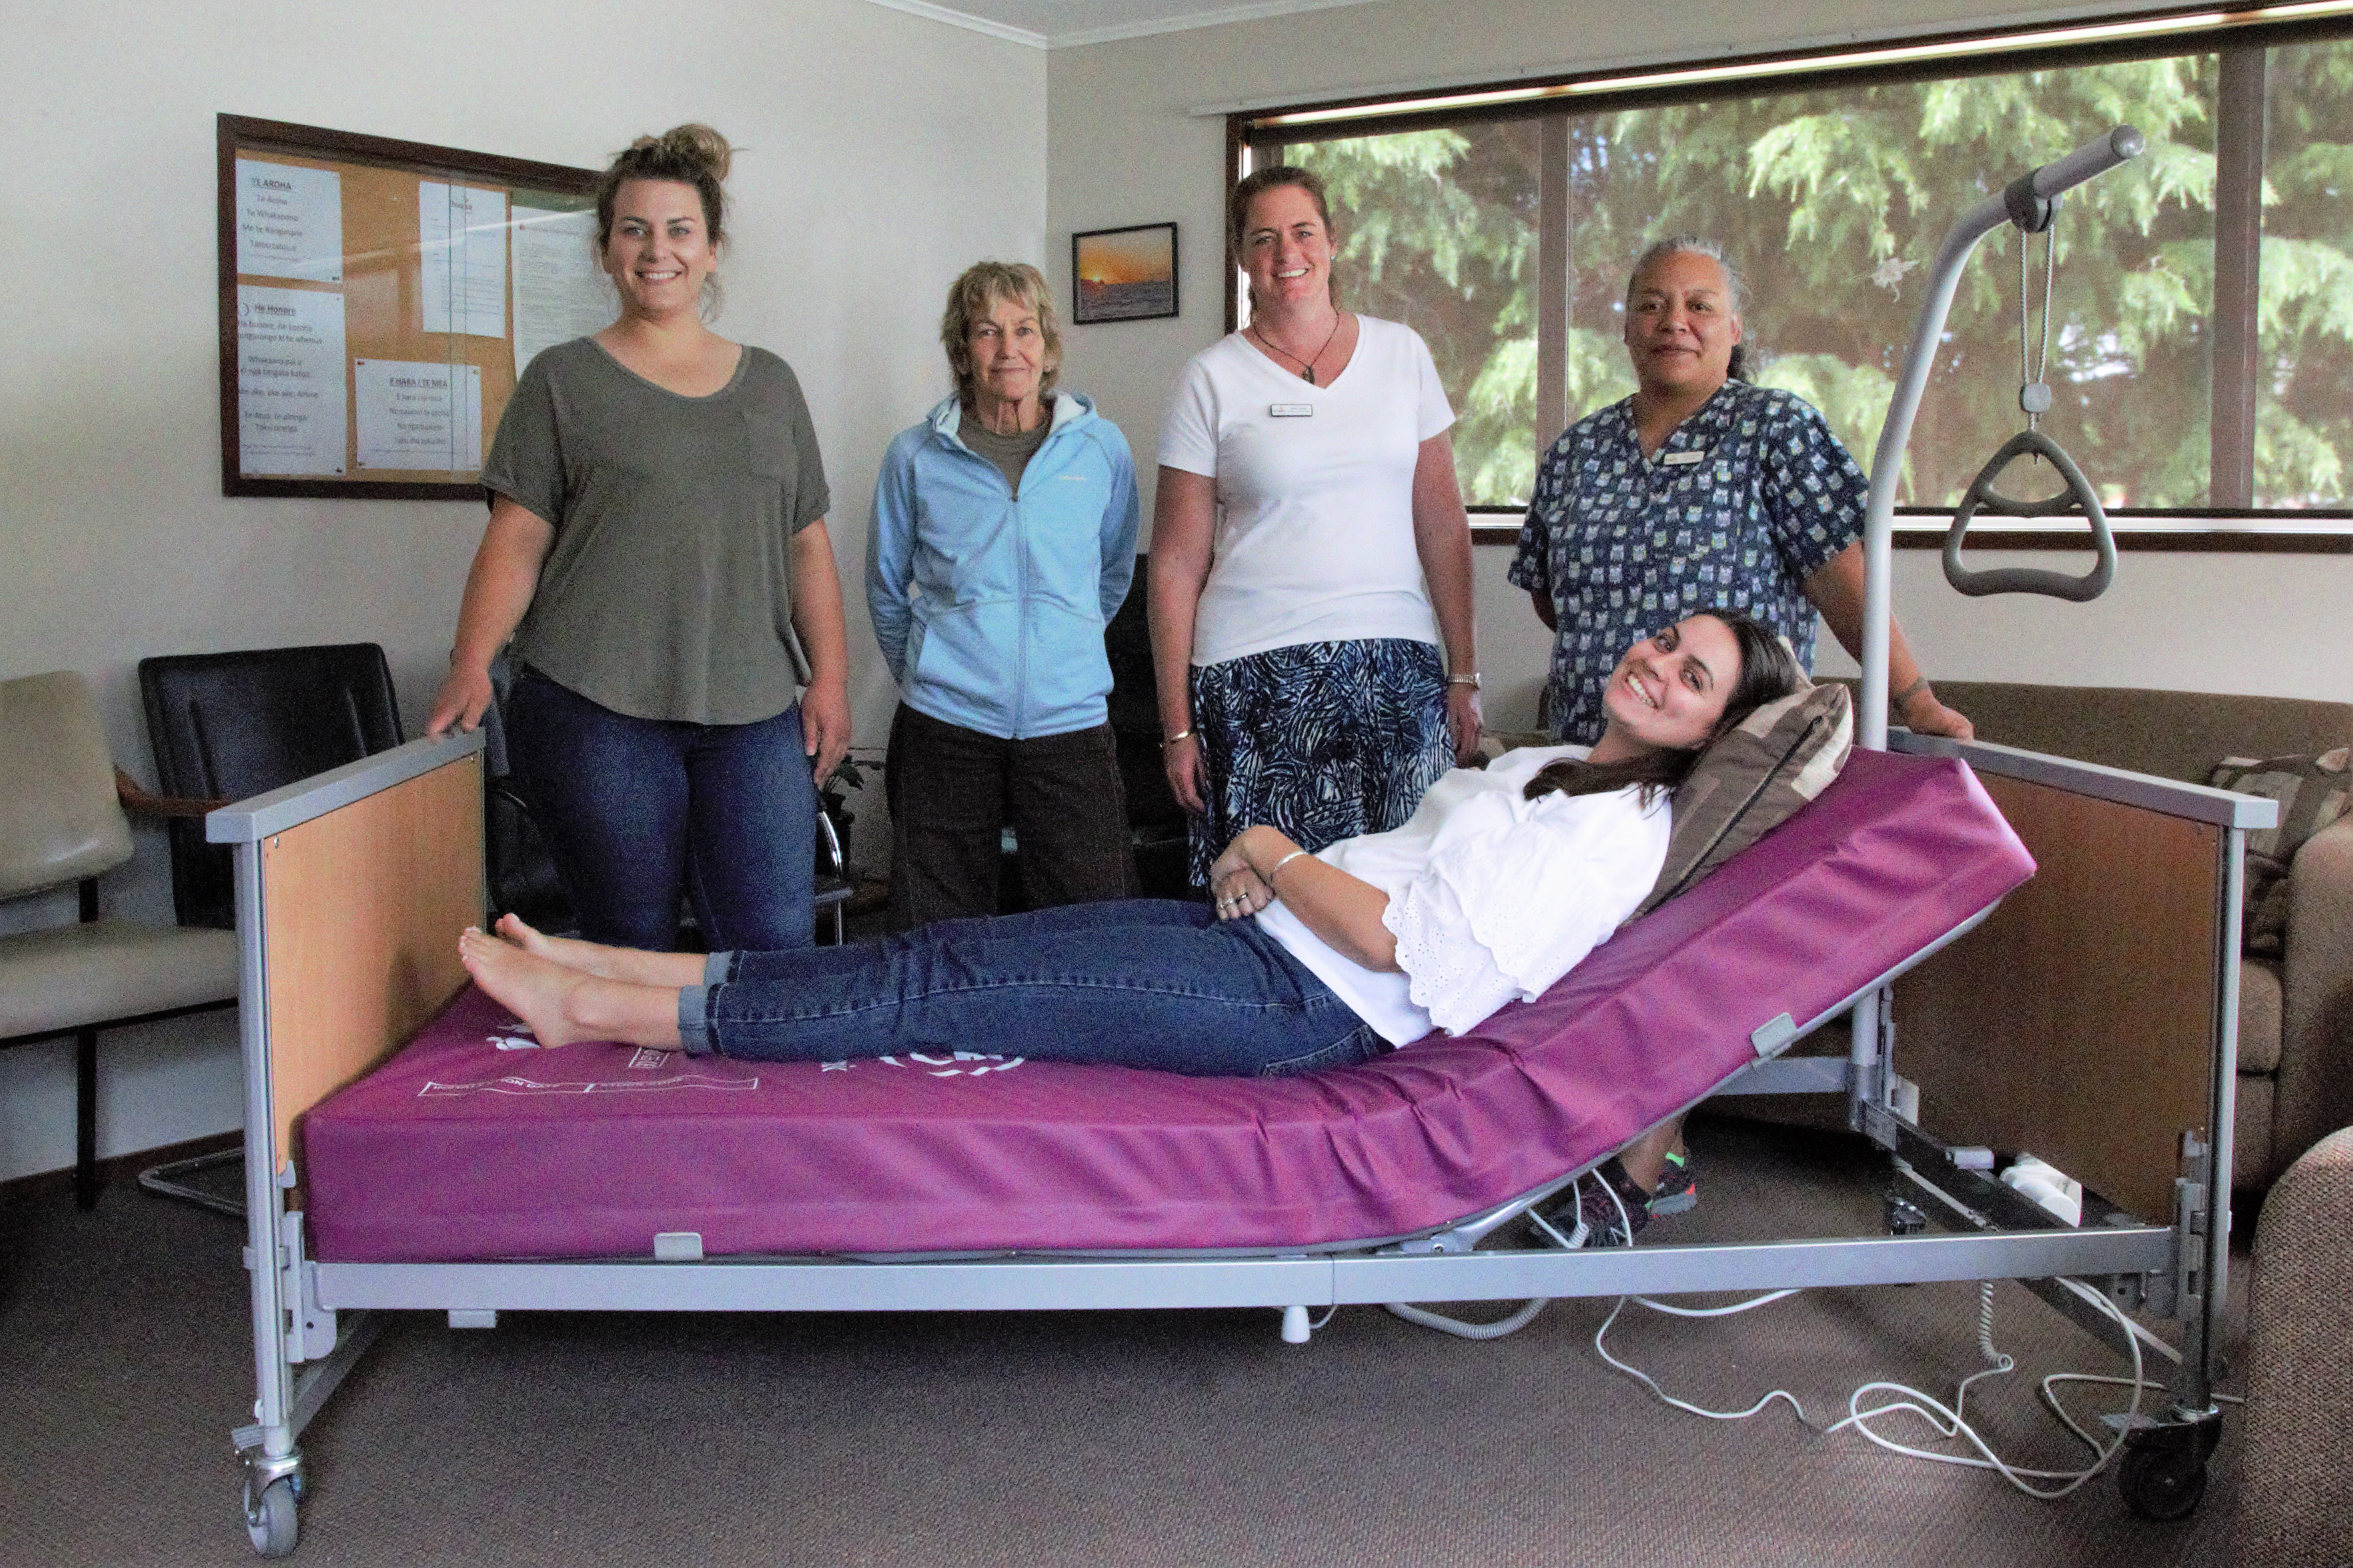 Harcourts Gisborne helps HospiceTairawhiti buy a new bed for facility